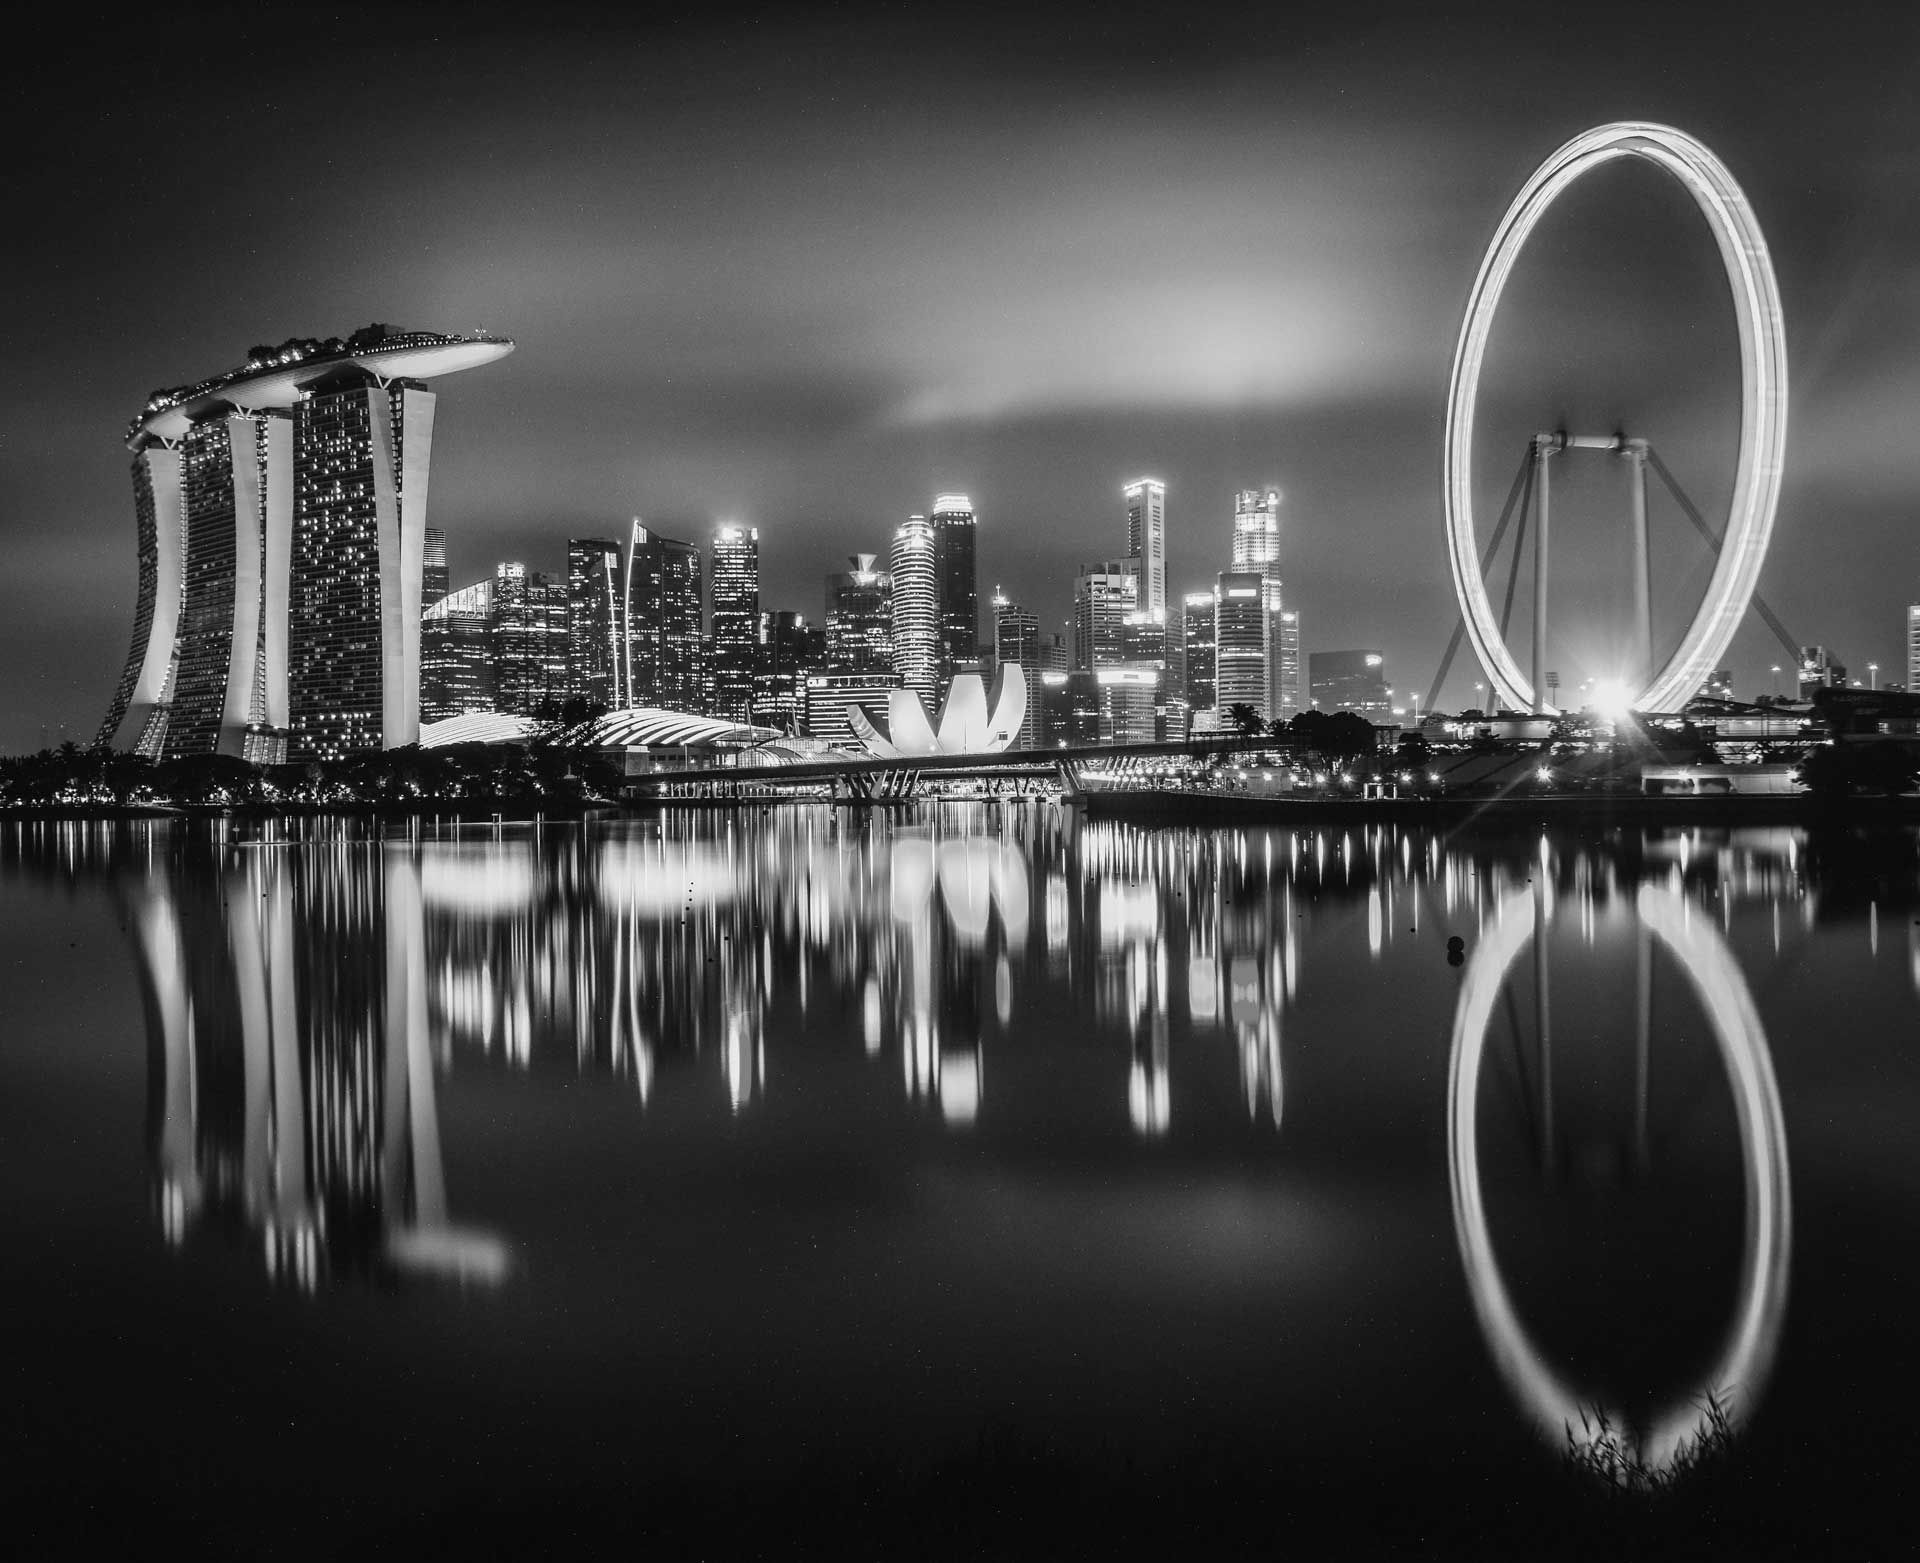 Black-and-white photo of Singapore with Marina Bay Sands on the left and the Singapore Flyer giant ferris wheel to the right